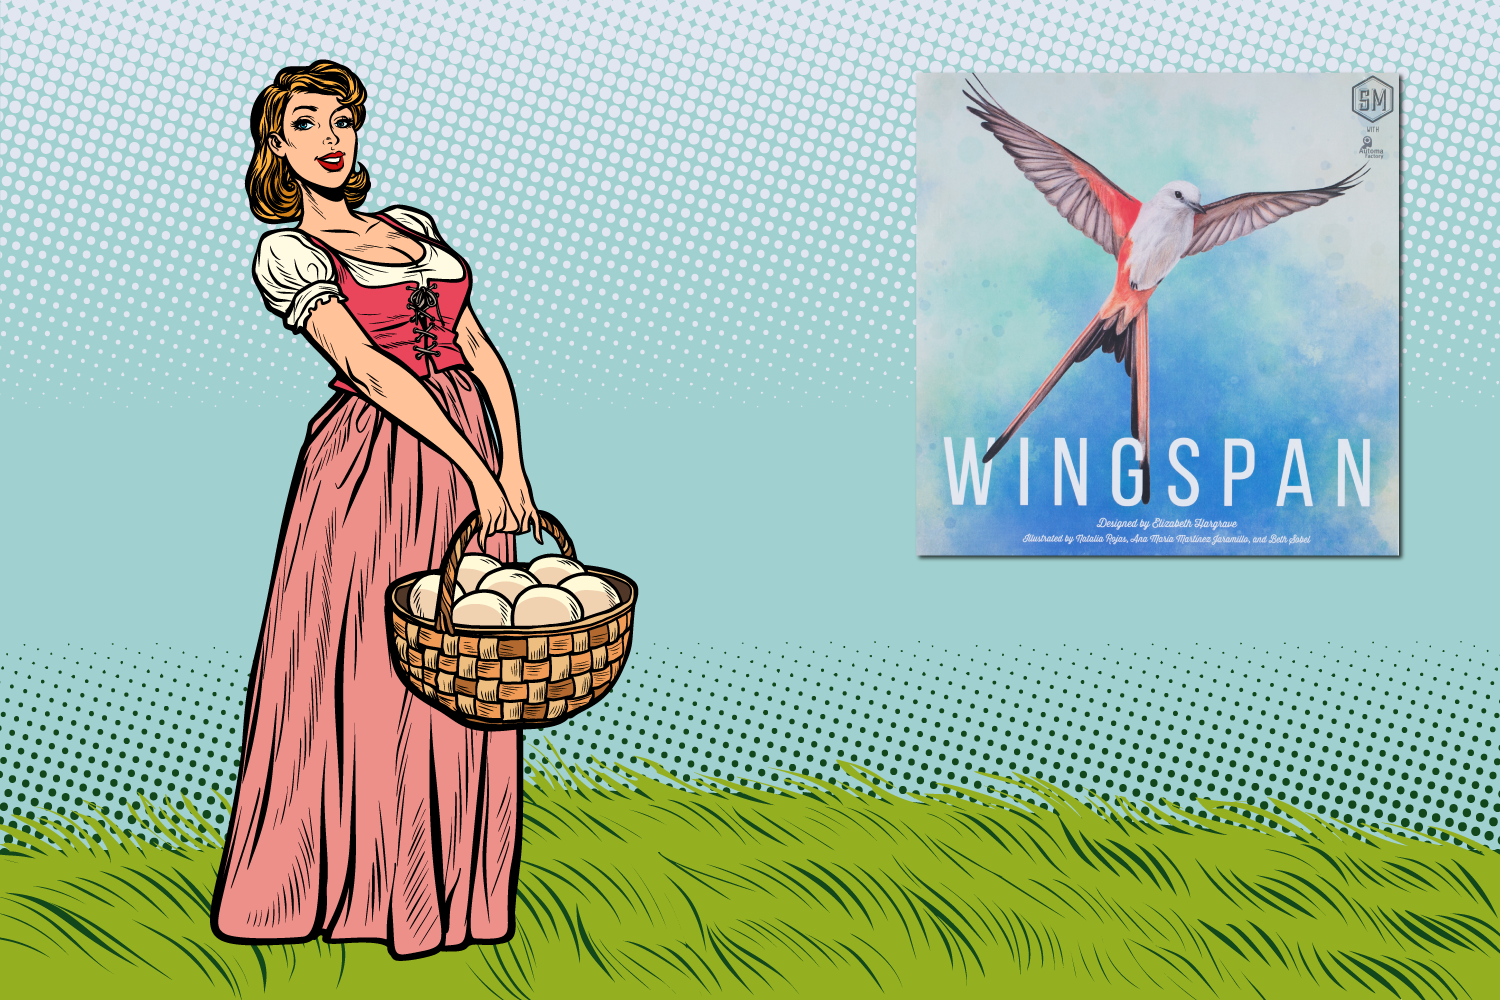 Wingspan-Board-Game-Review-Header-Image-New1